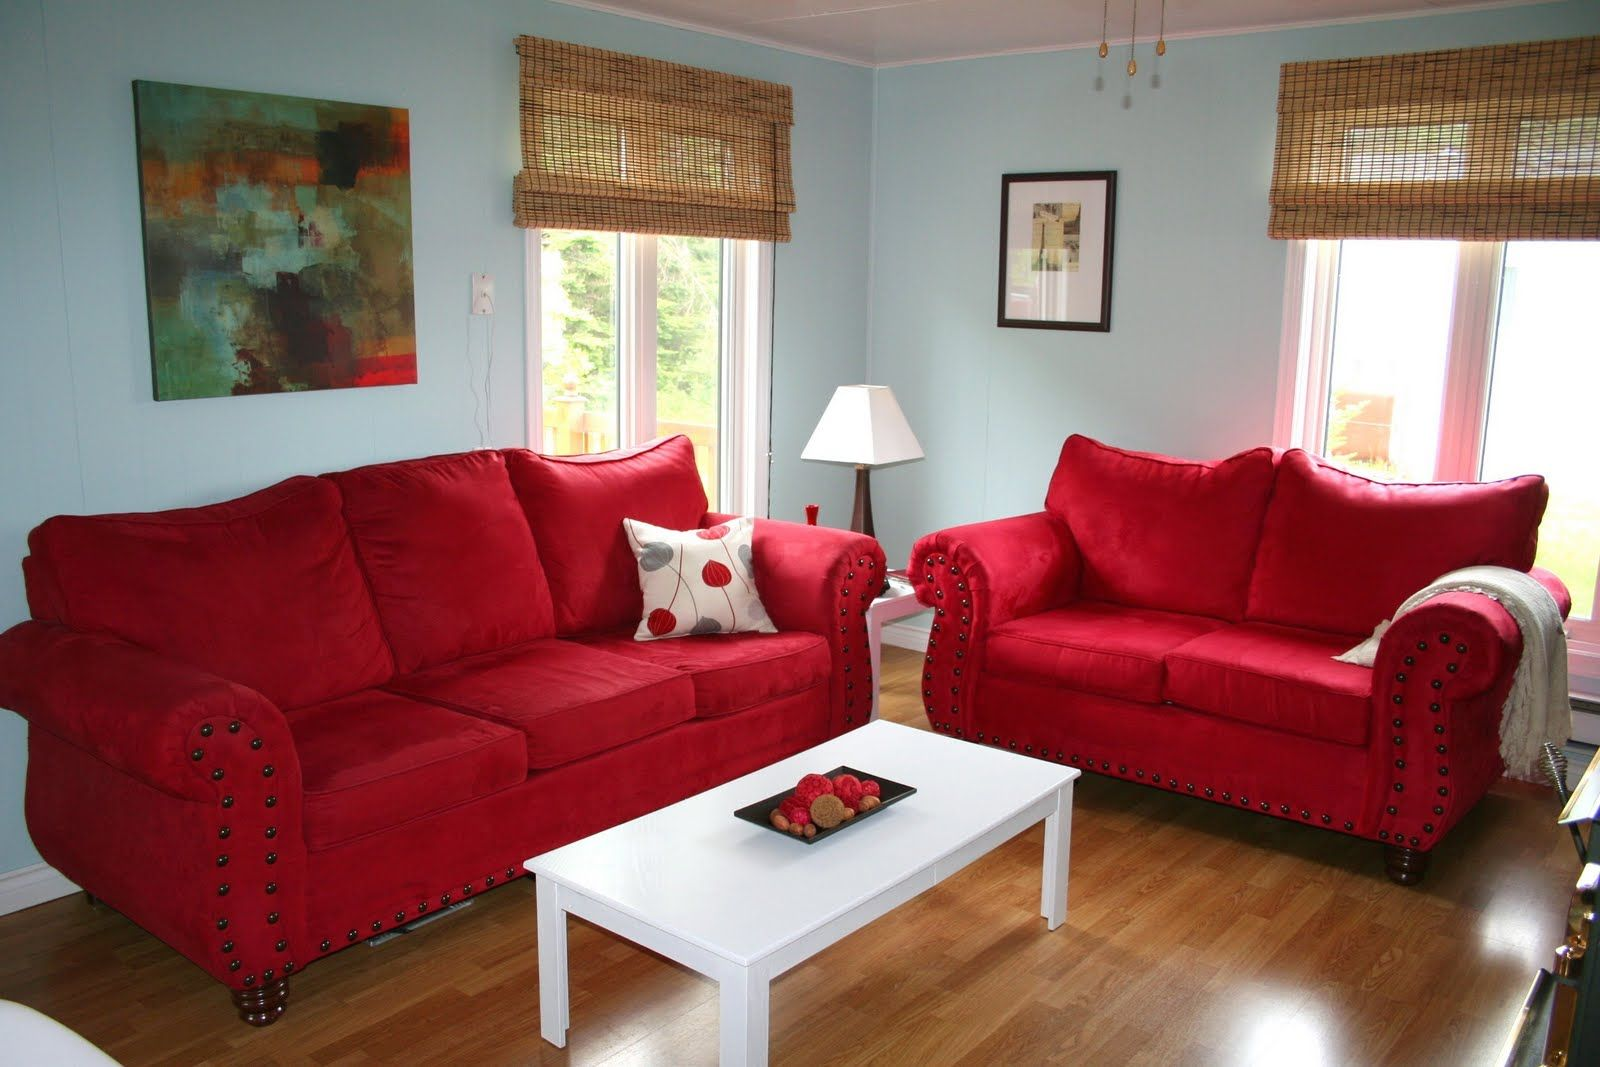 Rooms With Blue Walls Red Couch Red Couch Living Room Red Sofa Living Room Living Room Paint